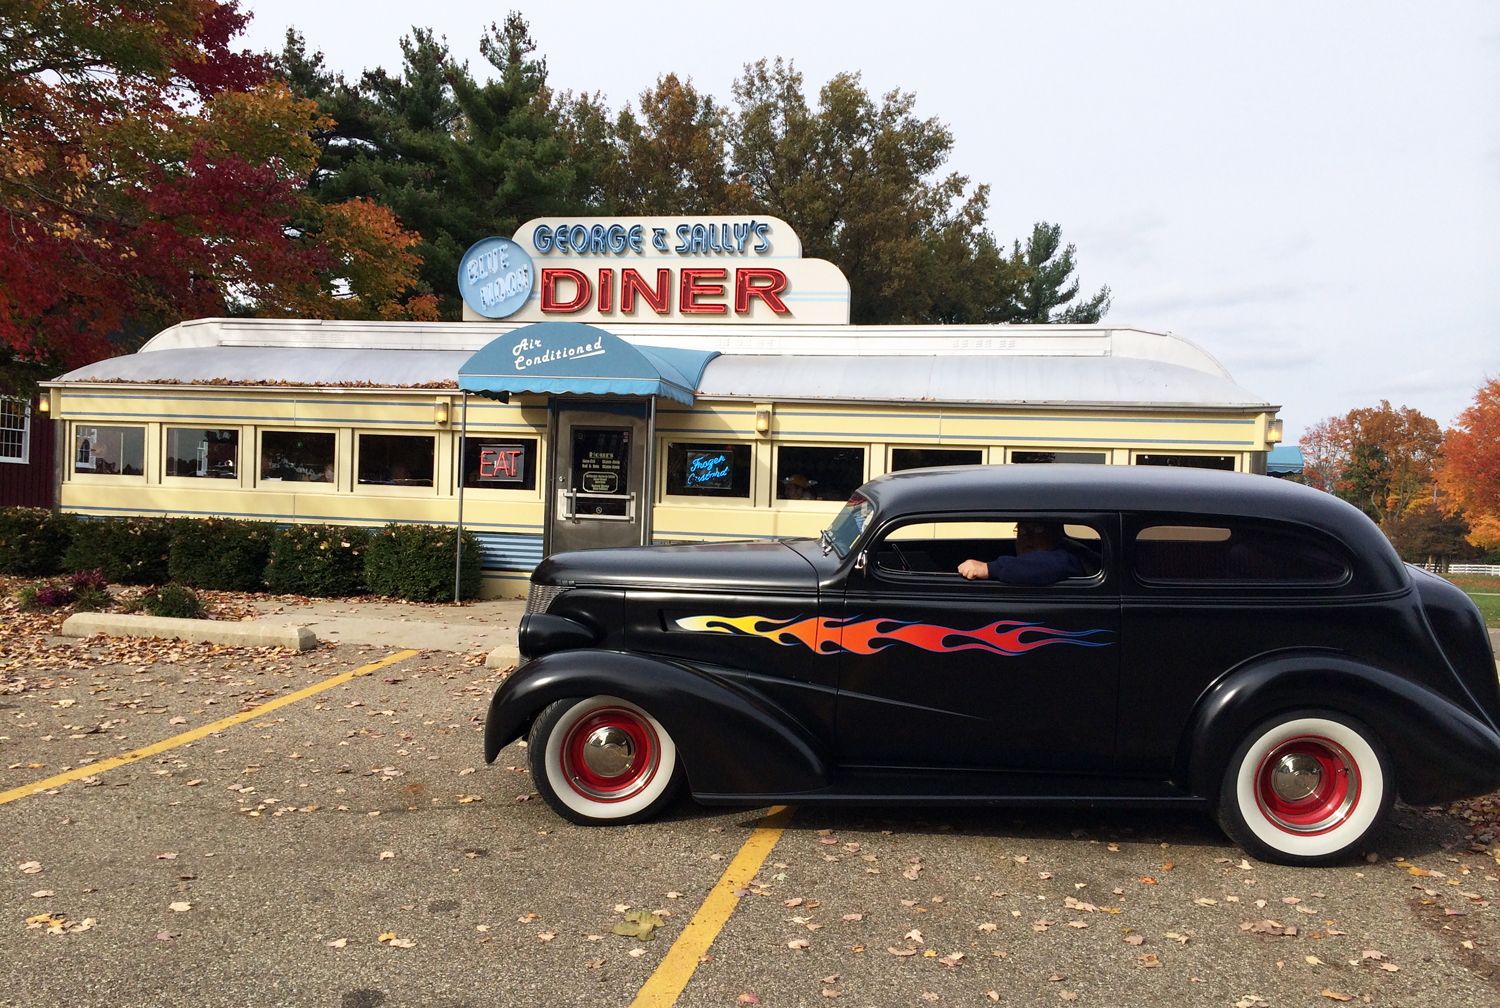 Kens 37 Chevy In Front of Diner_Gilmore Museum